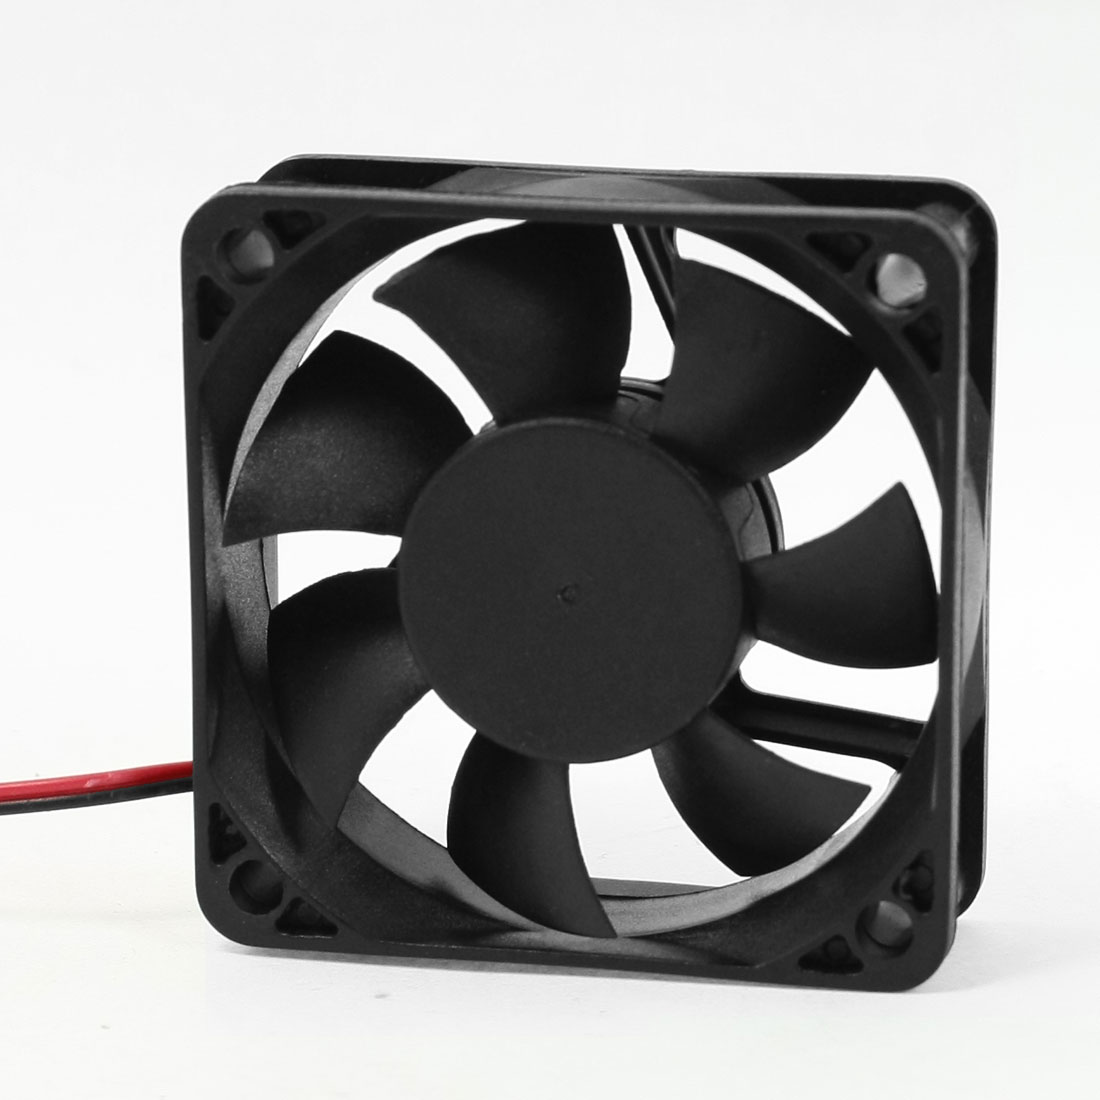 DC 12V Cooling Fan 60mm x 15mm for PC Computer Case CPU Cooler